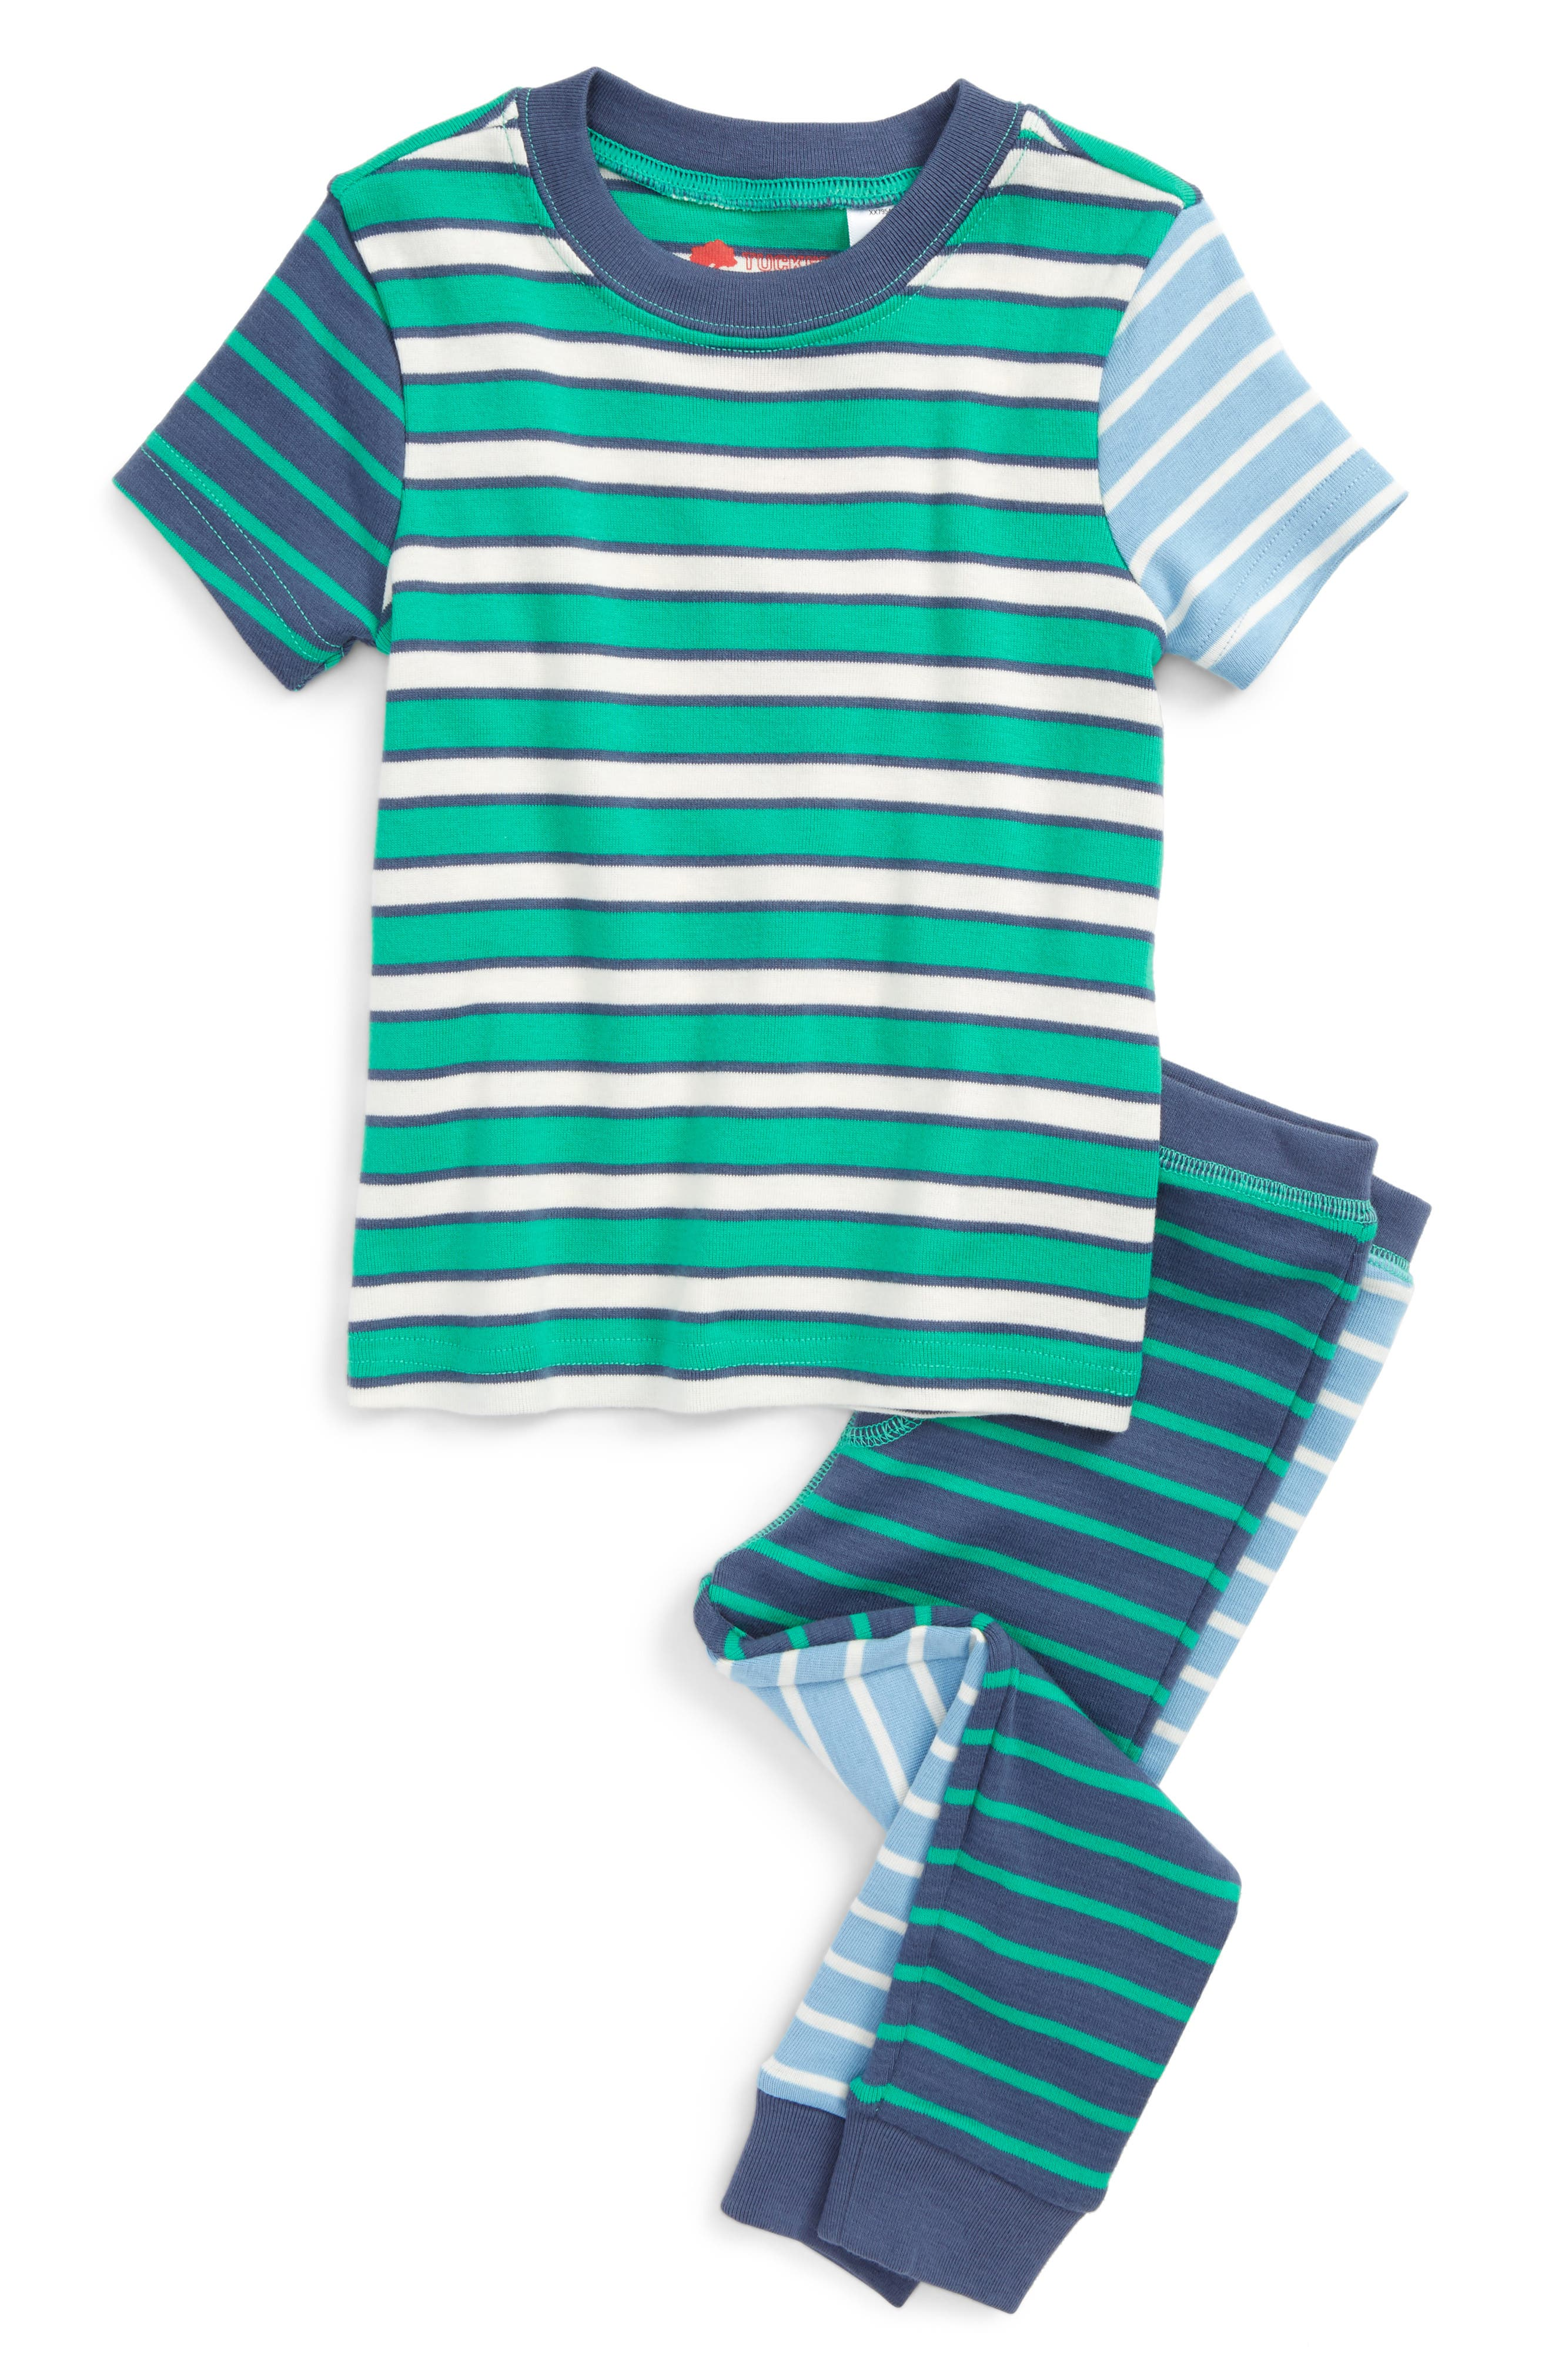 Alternate Image 1 Selected - Tucker + Tate Fitted Two-Piece Pajamas (Toddler Boys, Little Boys & Big Boys)